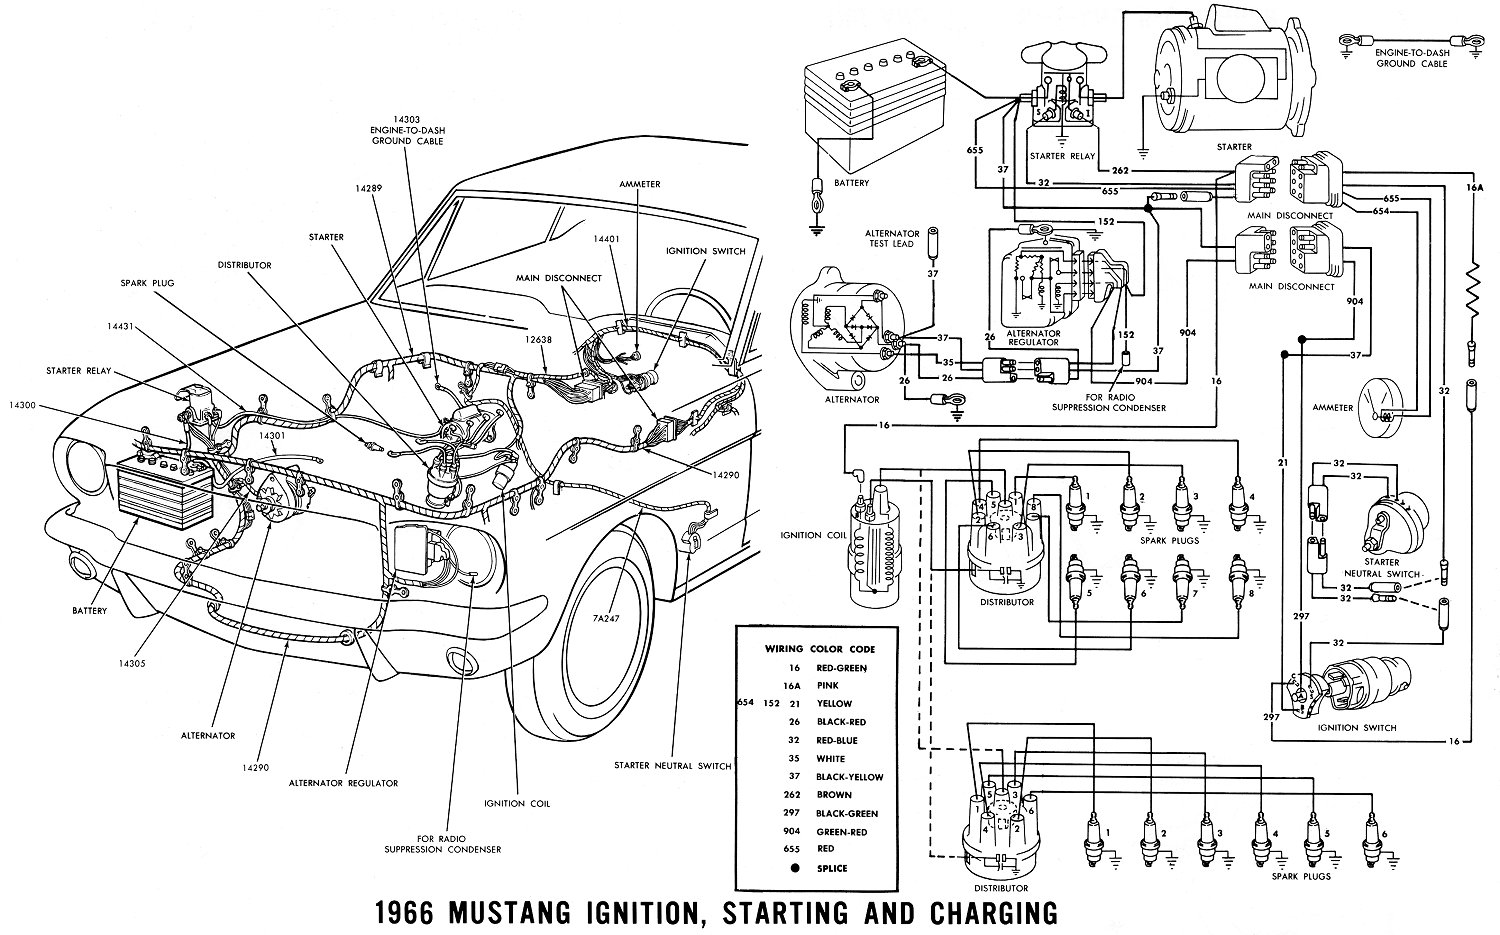 66ignit vintage mustang wiring diagrams 1966 mustang wiring diagram pdf at alyssarenee.co